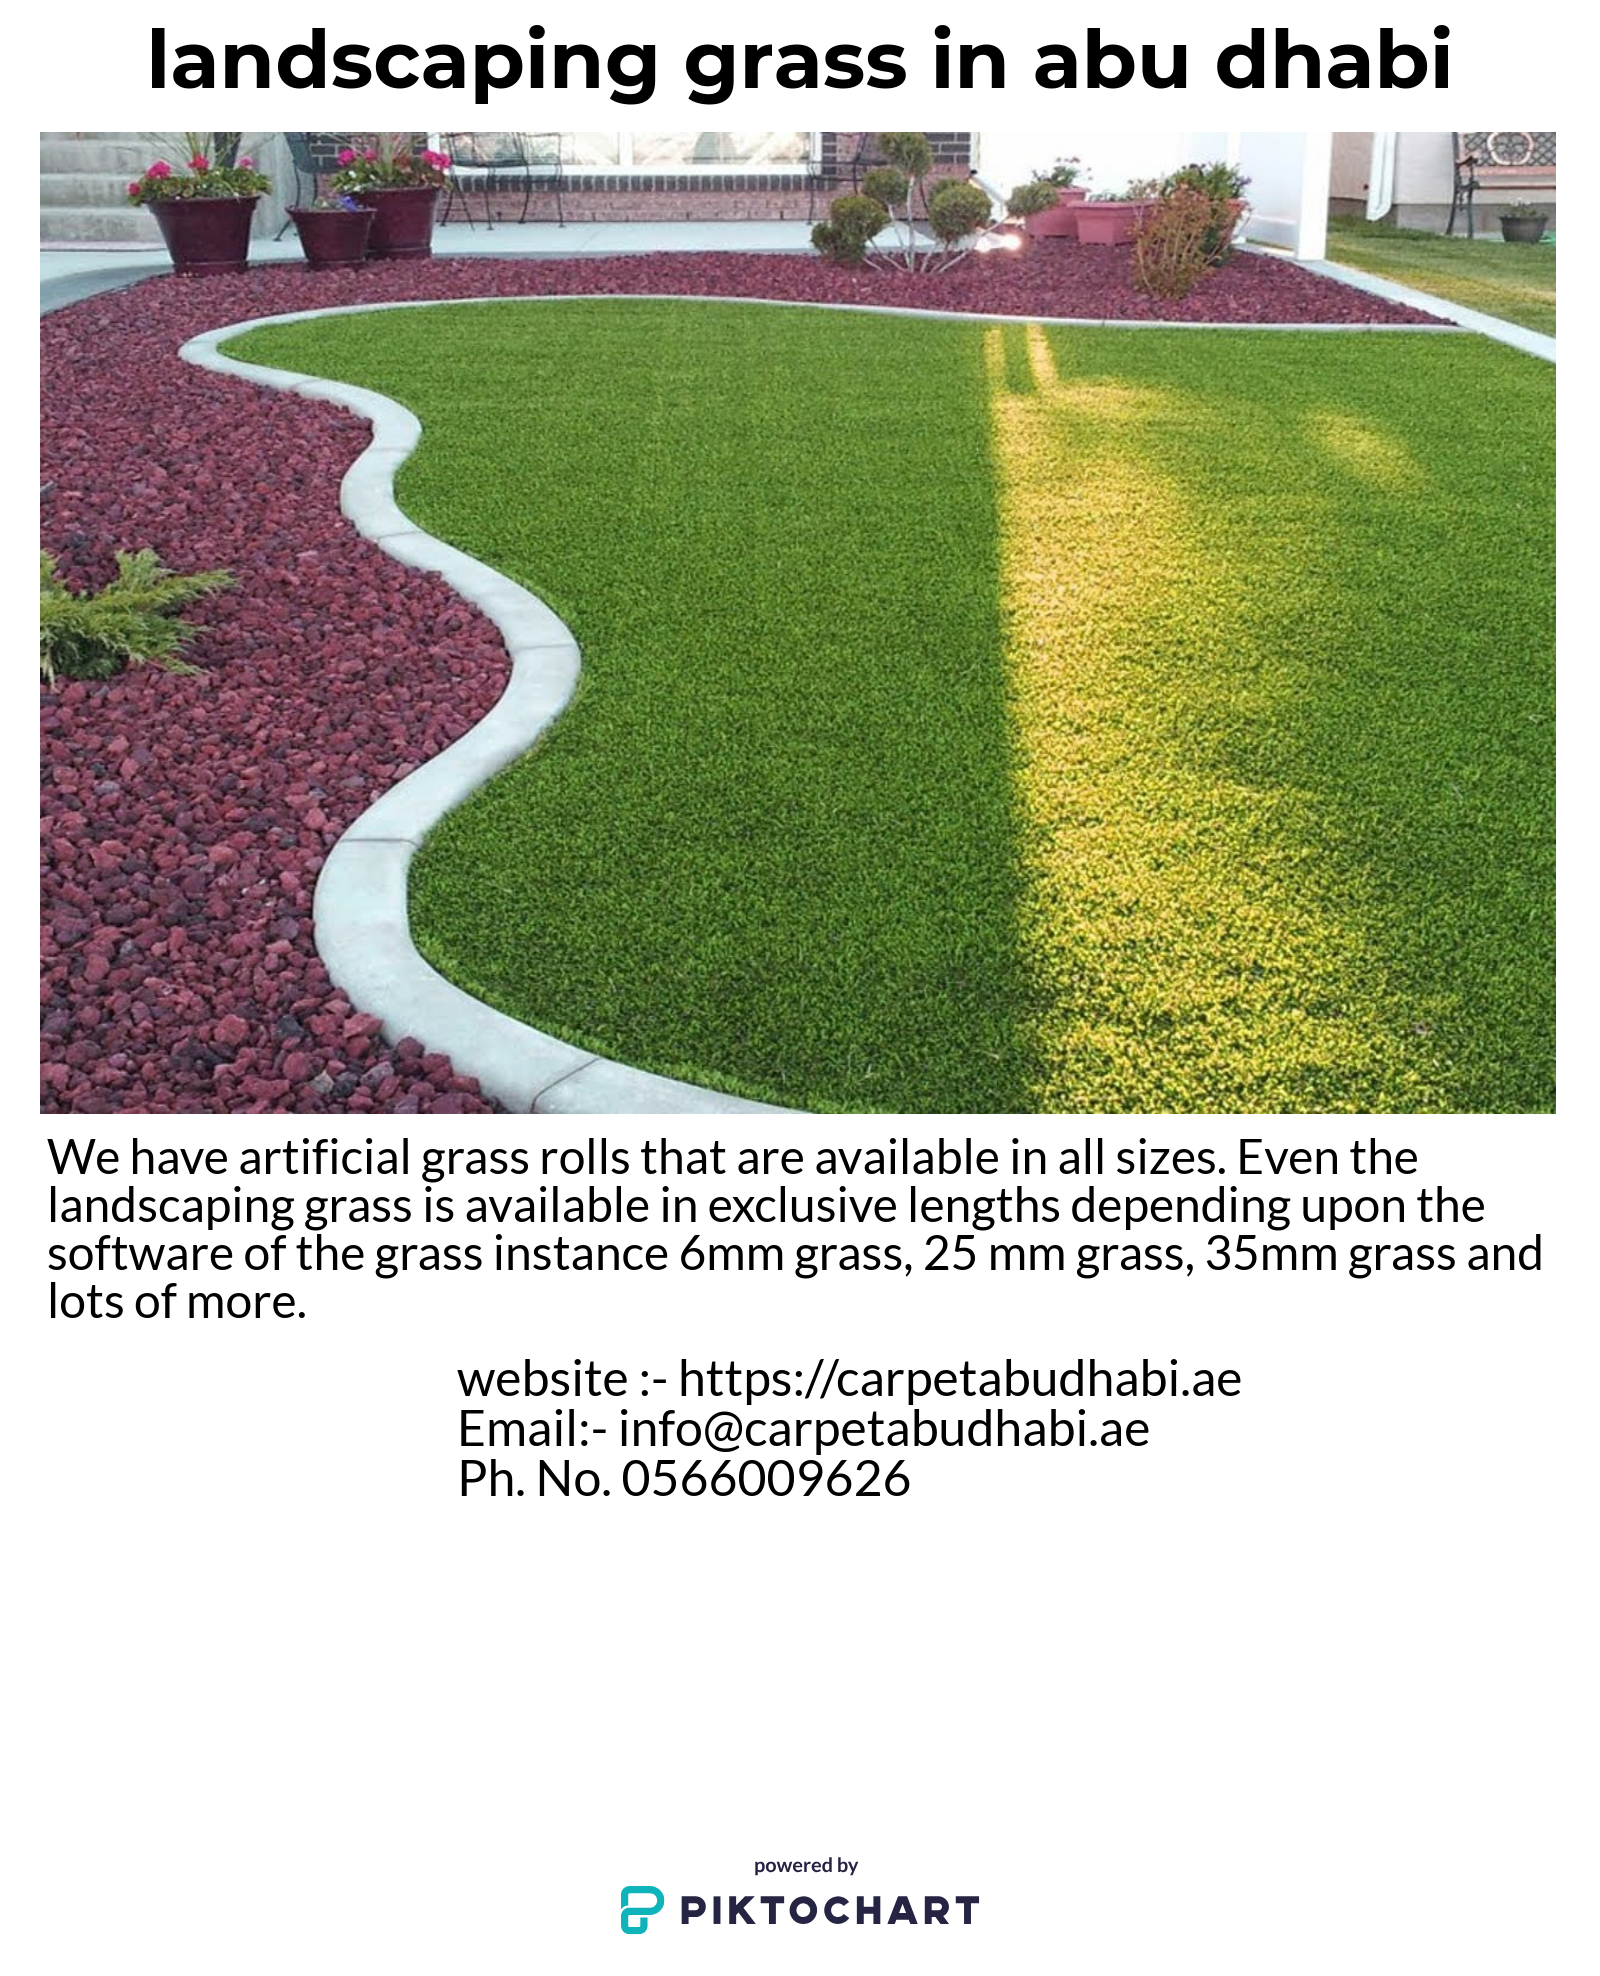 We have artificial grass rolls that are available in all